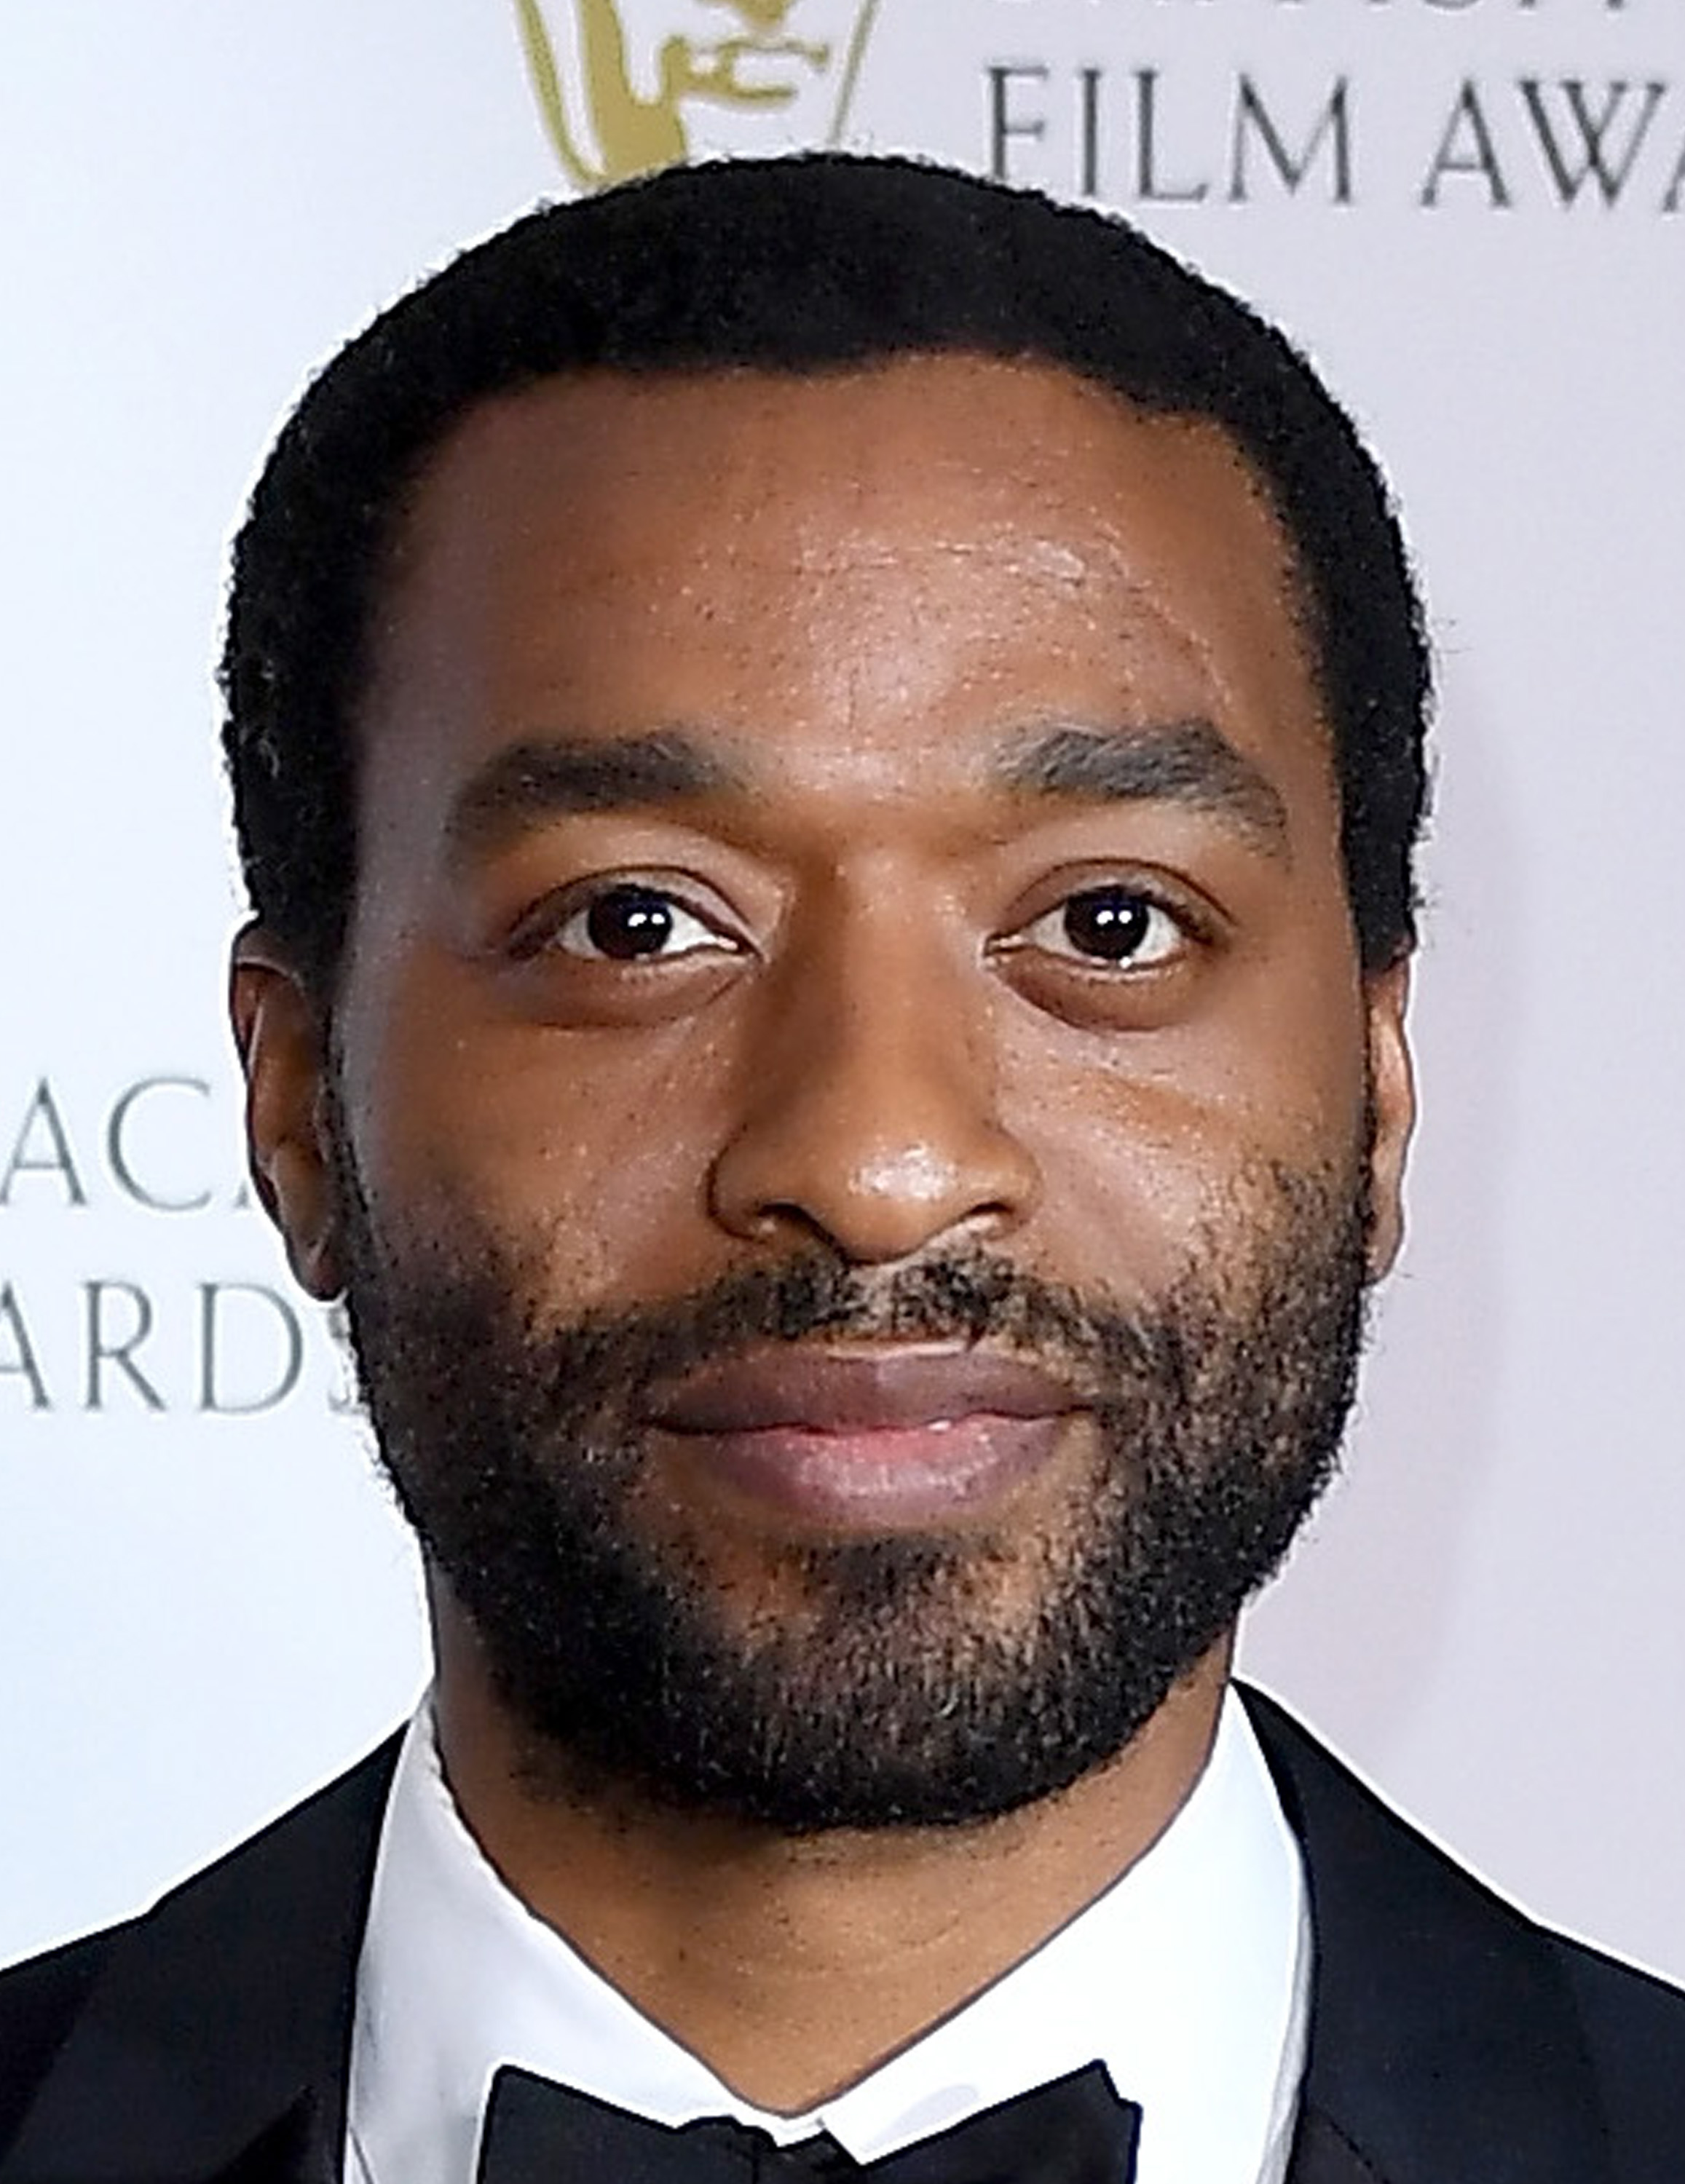 chiwetel ejiofor - photo #18